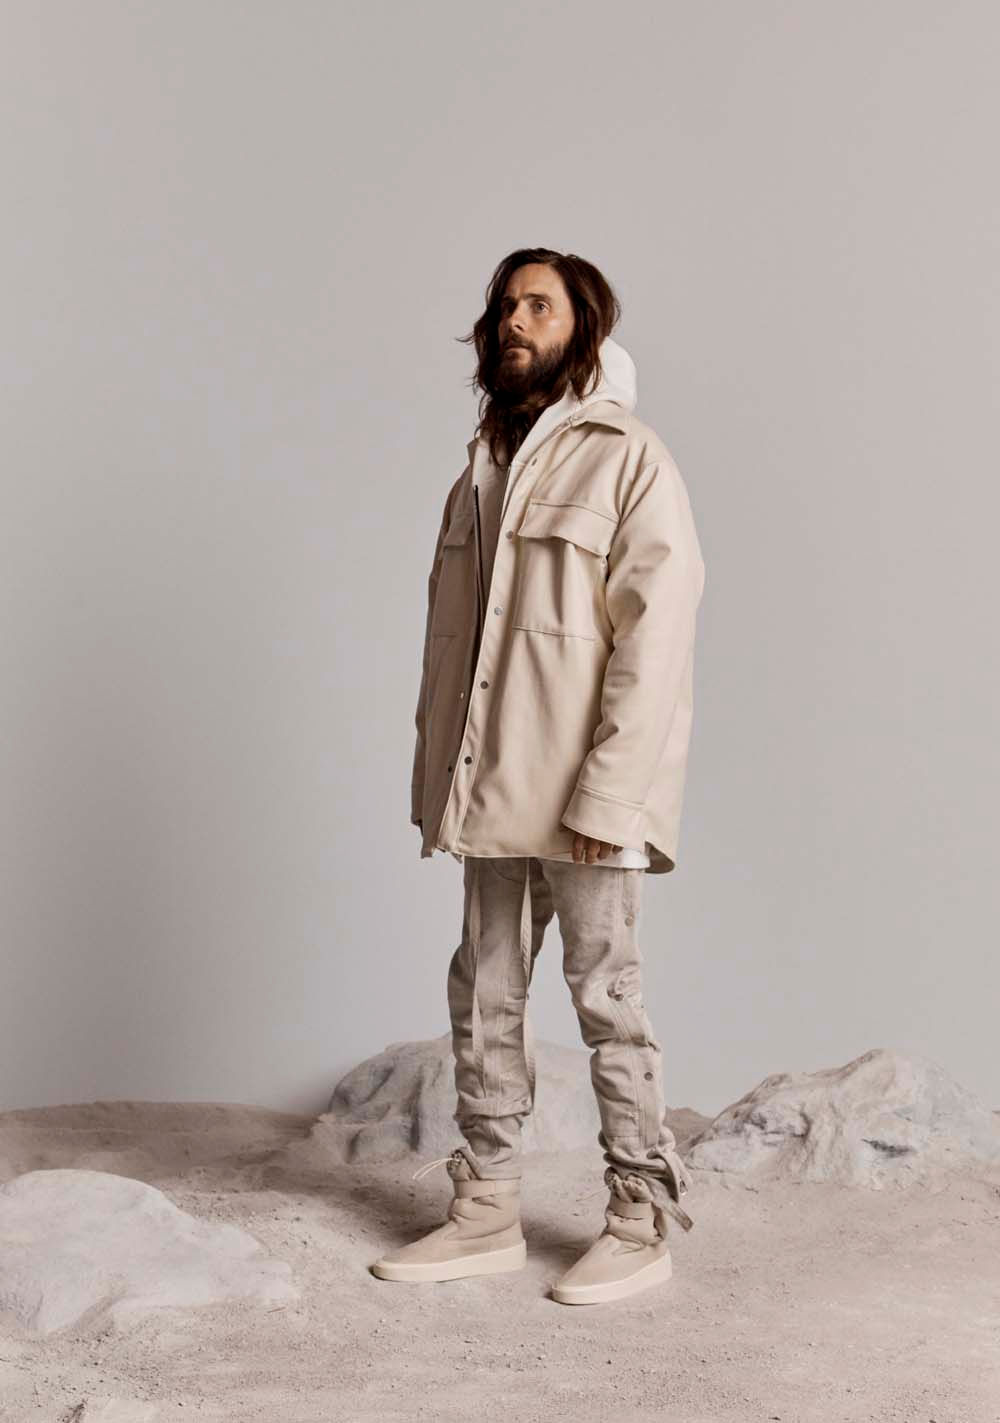 https_%2F%2Fhypebeast.com%2Fimage%2F2018%2F09%2Ffear-of-god-6-sixth-collection-jared-leto-nike-46.jpg